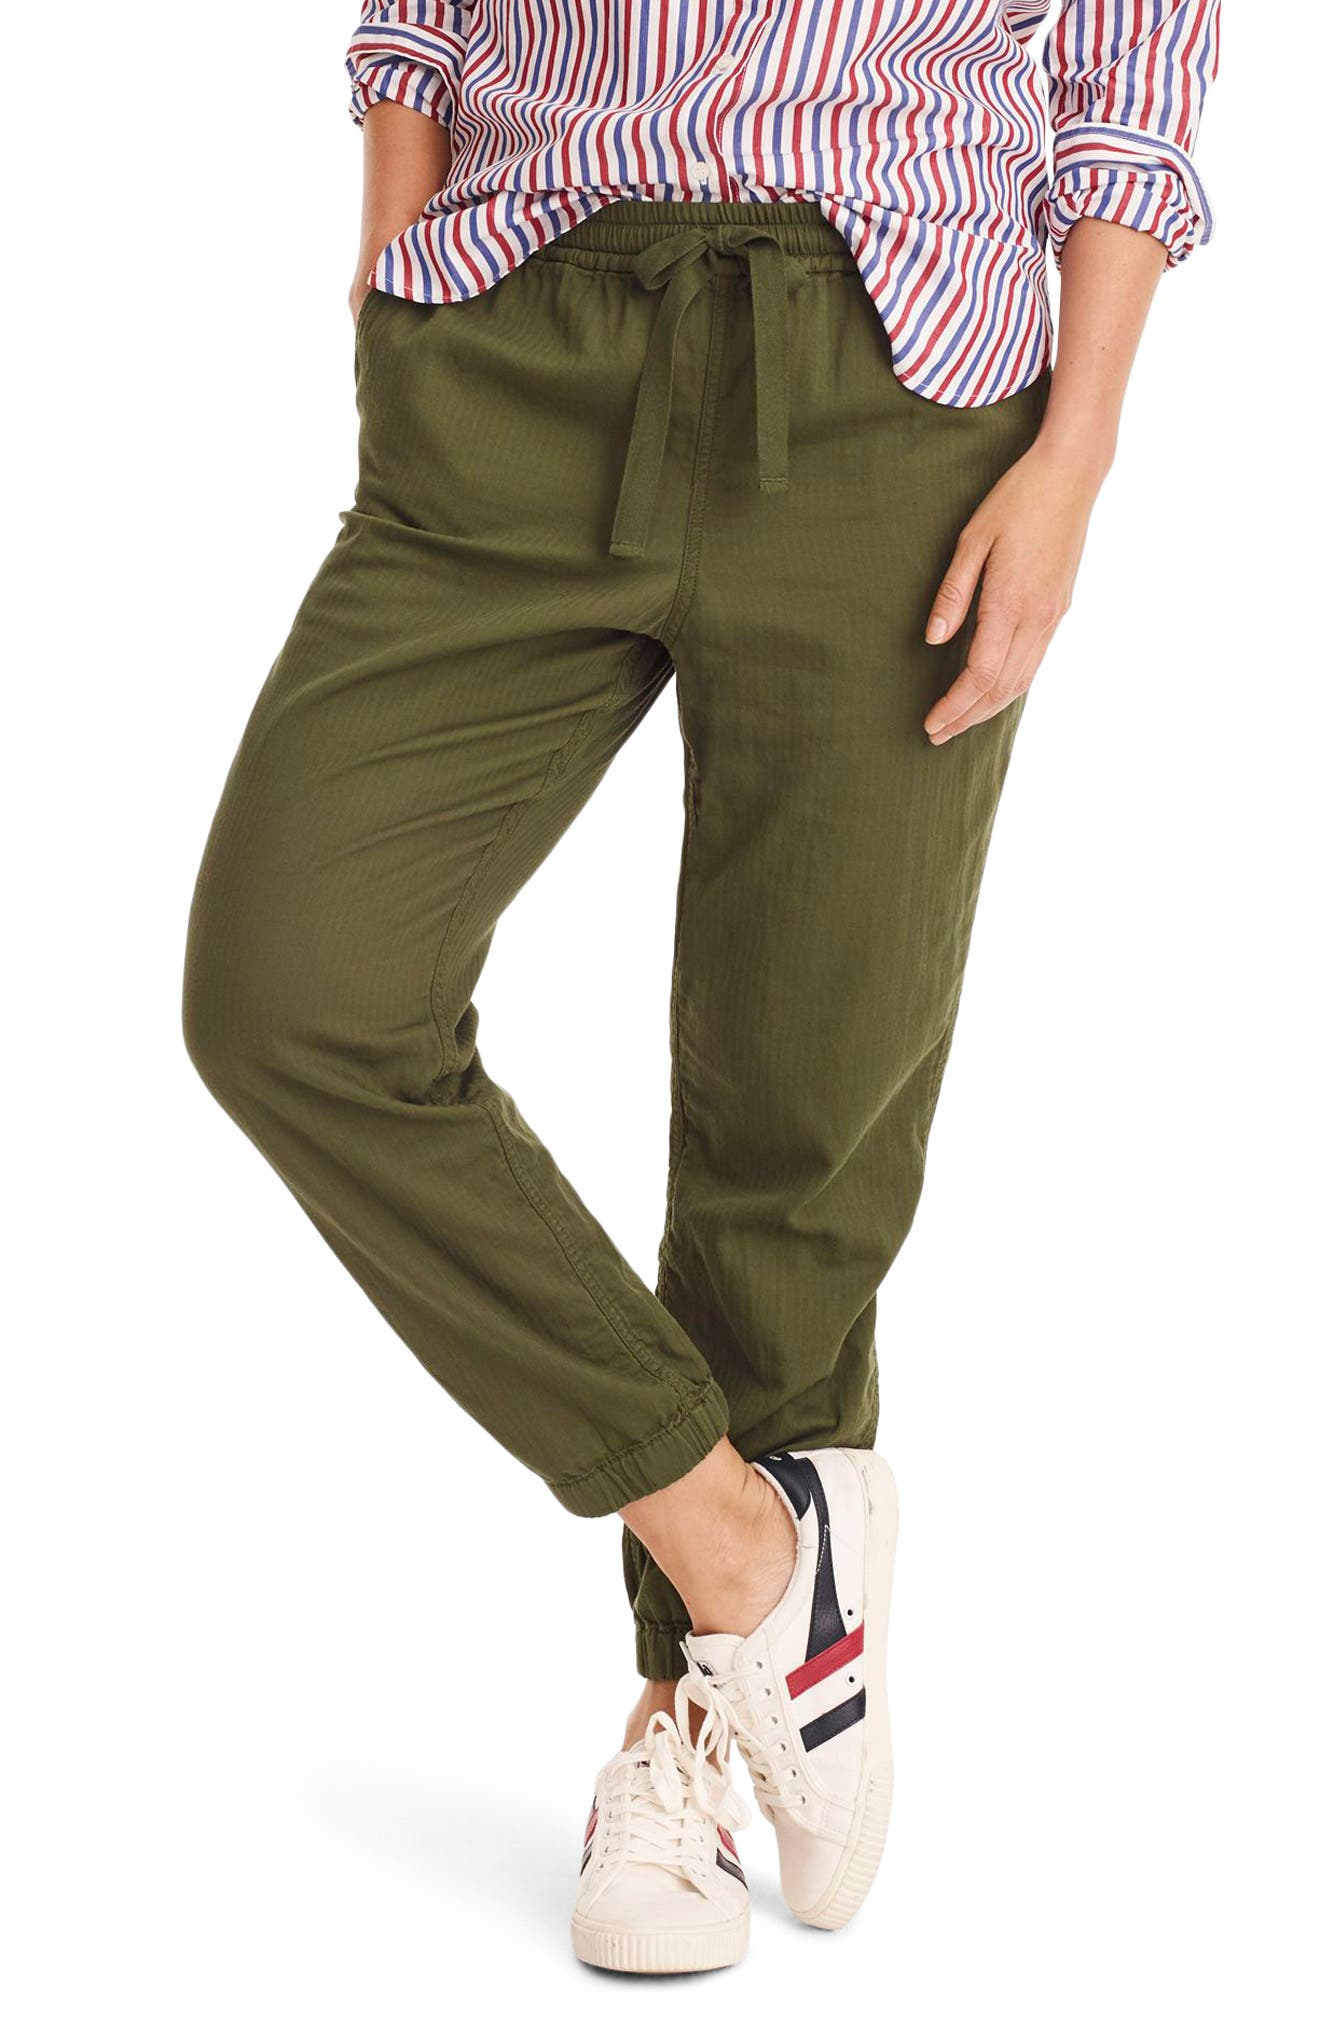 J.Crew Galicia Pull-On Cargo Pants (Regular & Petite)